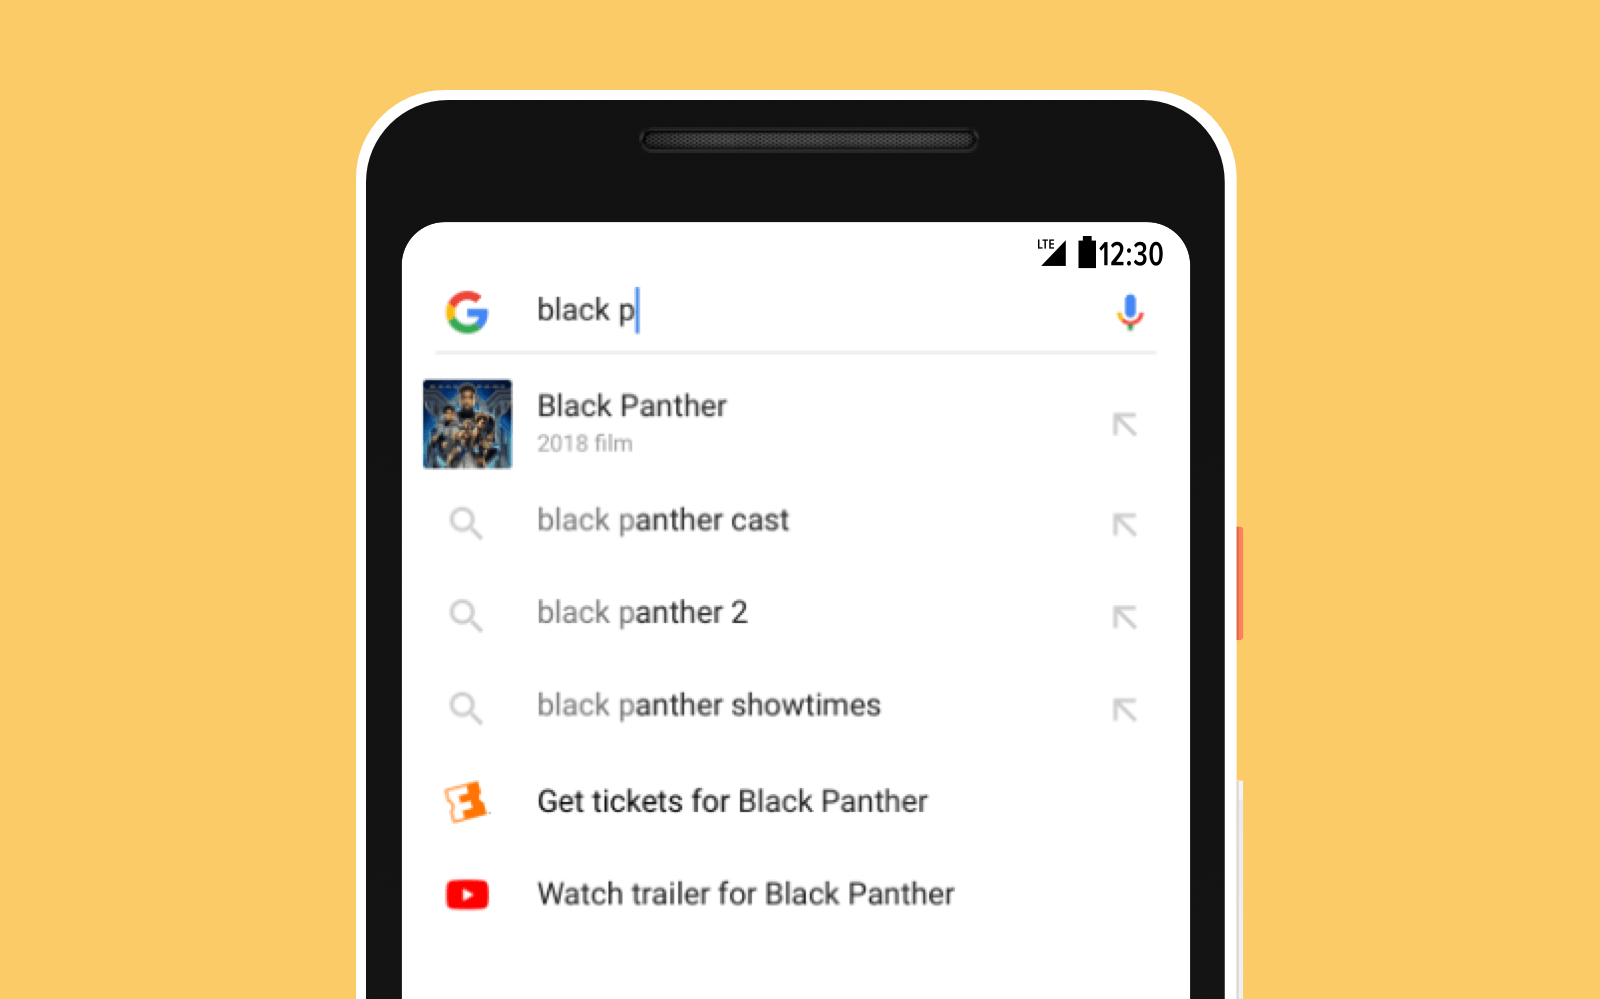 App actions suggestions during Google Search